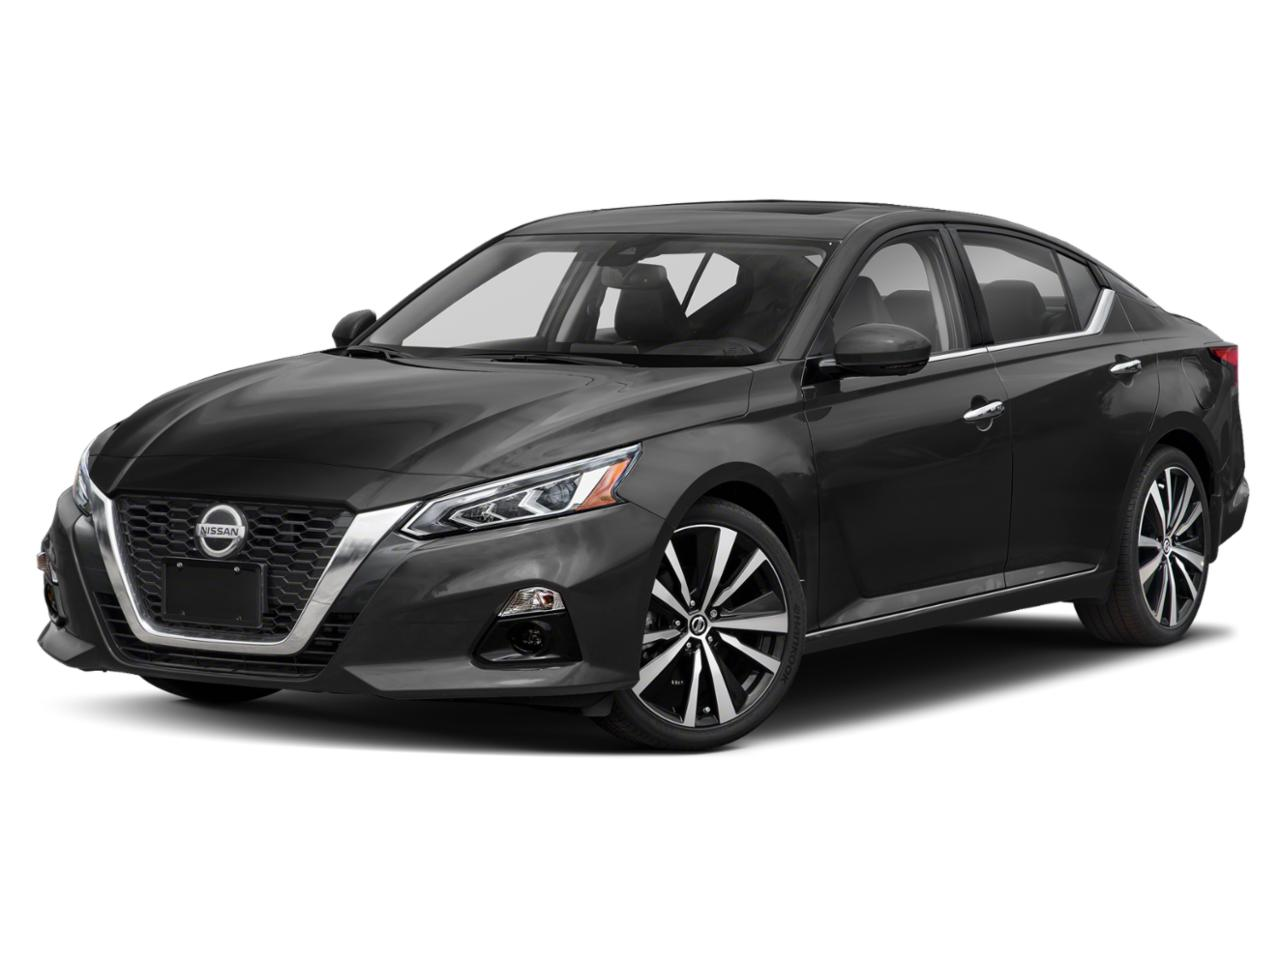 2019 Nissan Altima Vehicle Photo in San Antonio, TX 78238